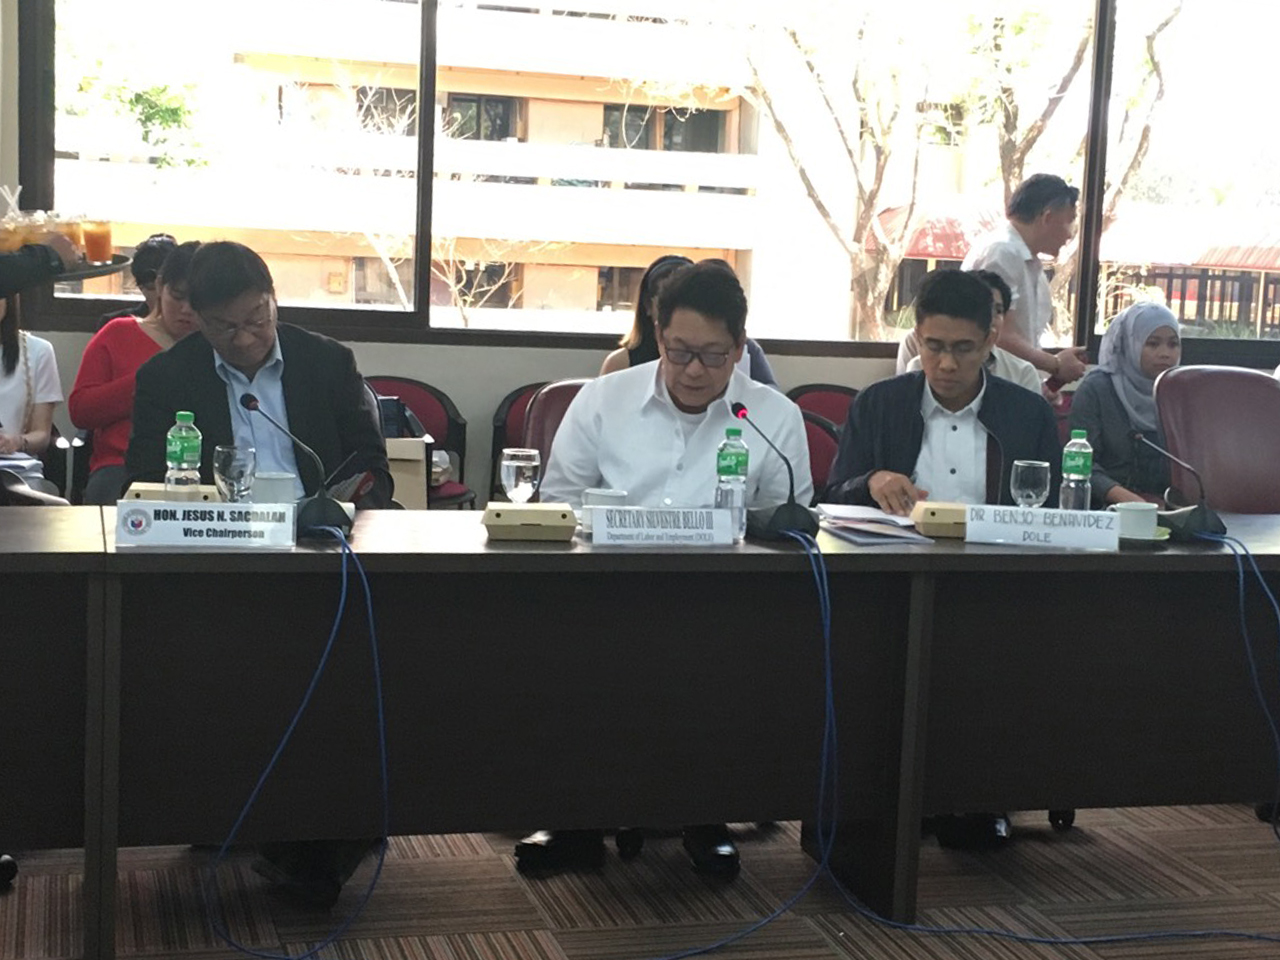 Bello commends BBL for its inclusive, labor-friendly provisions